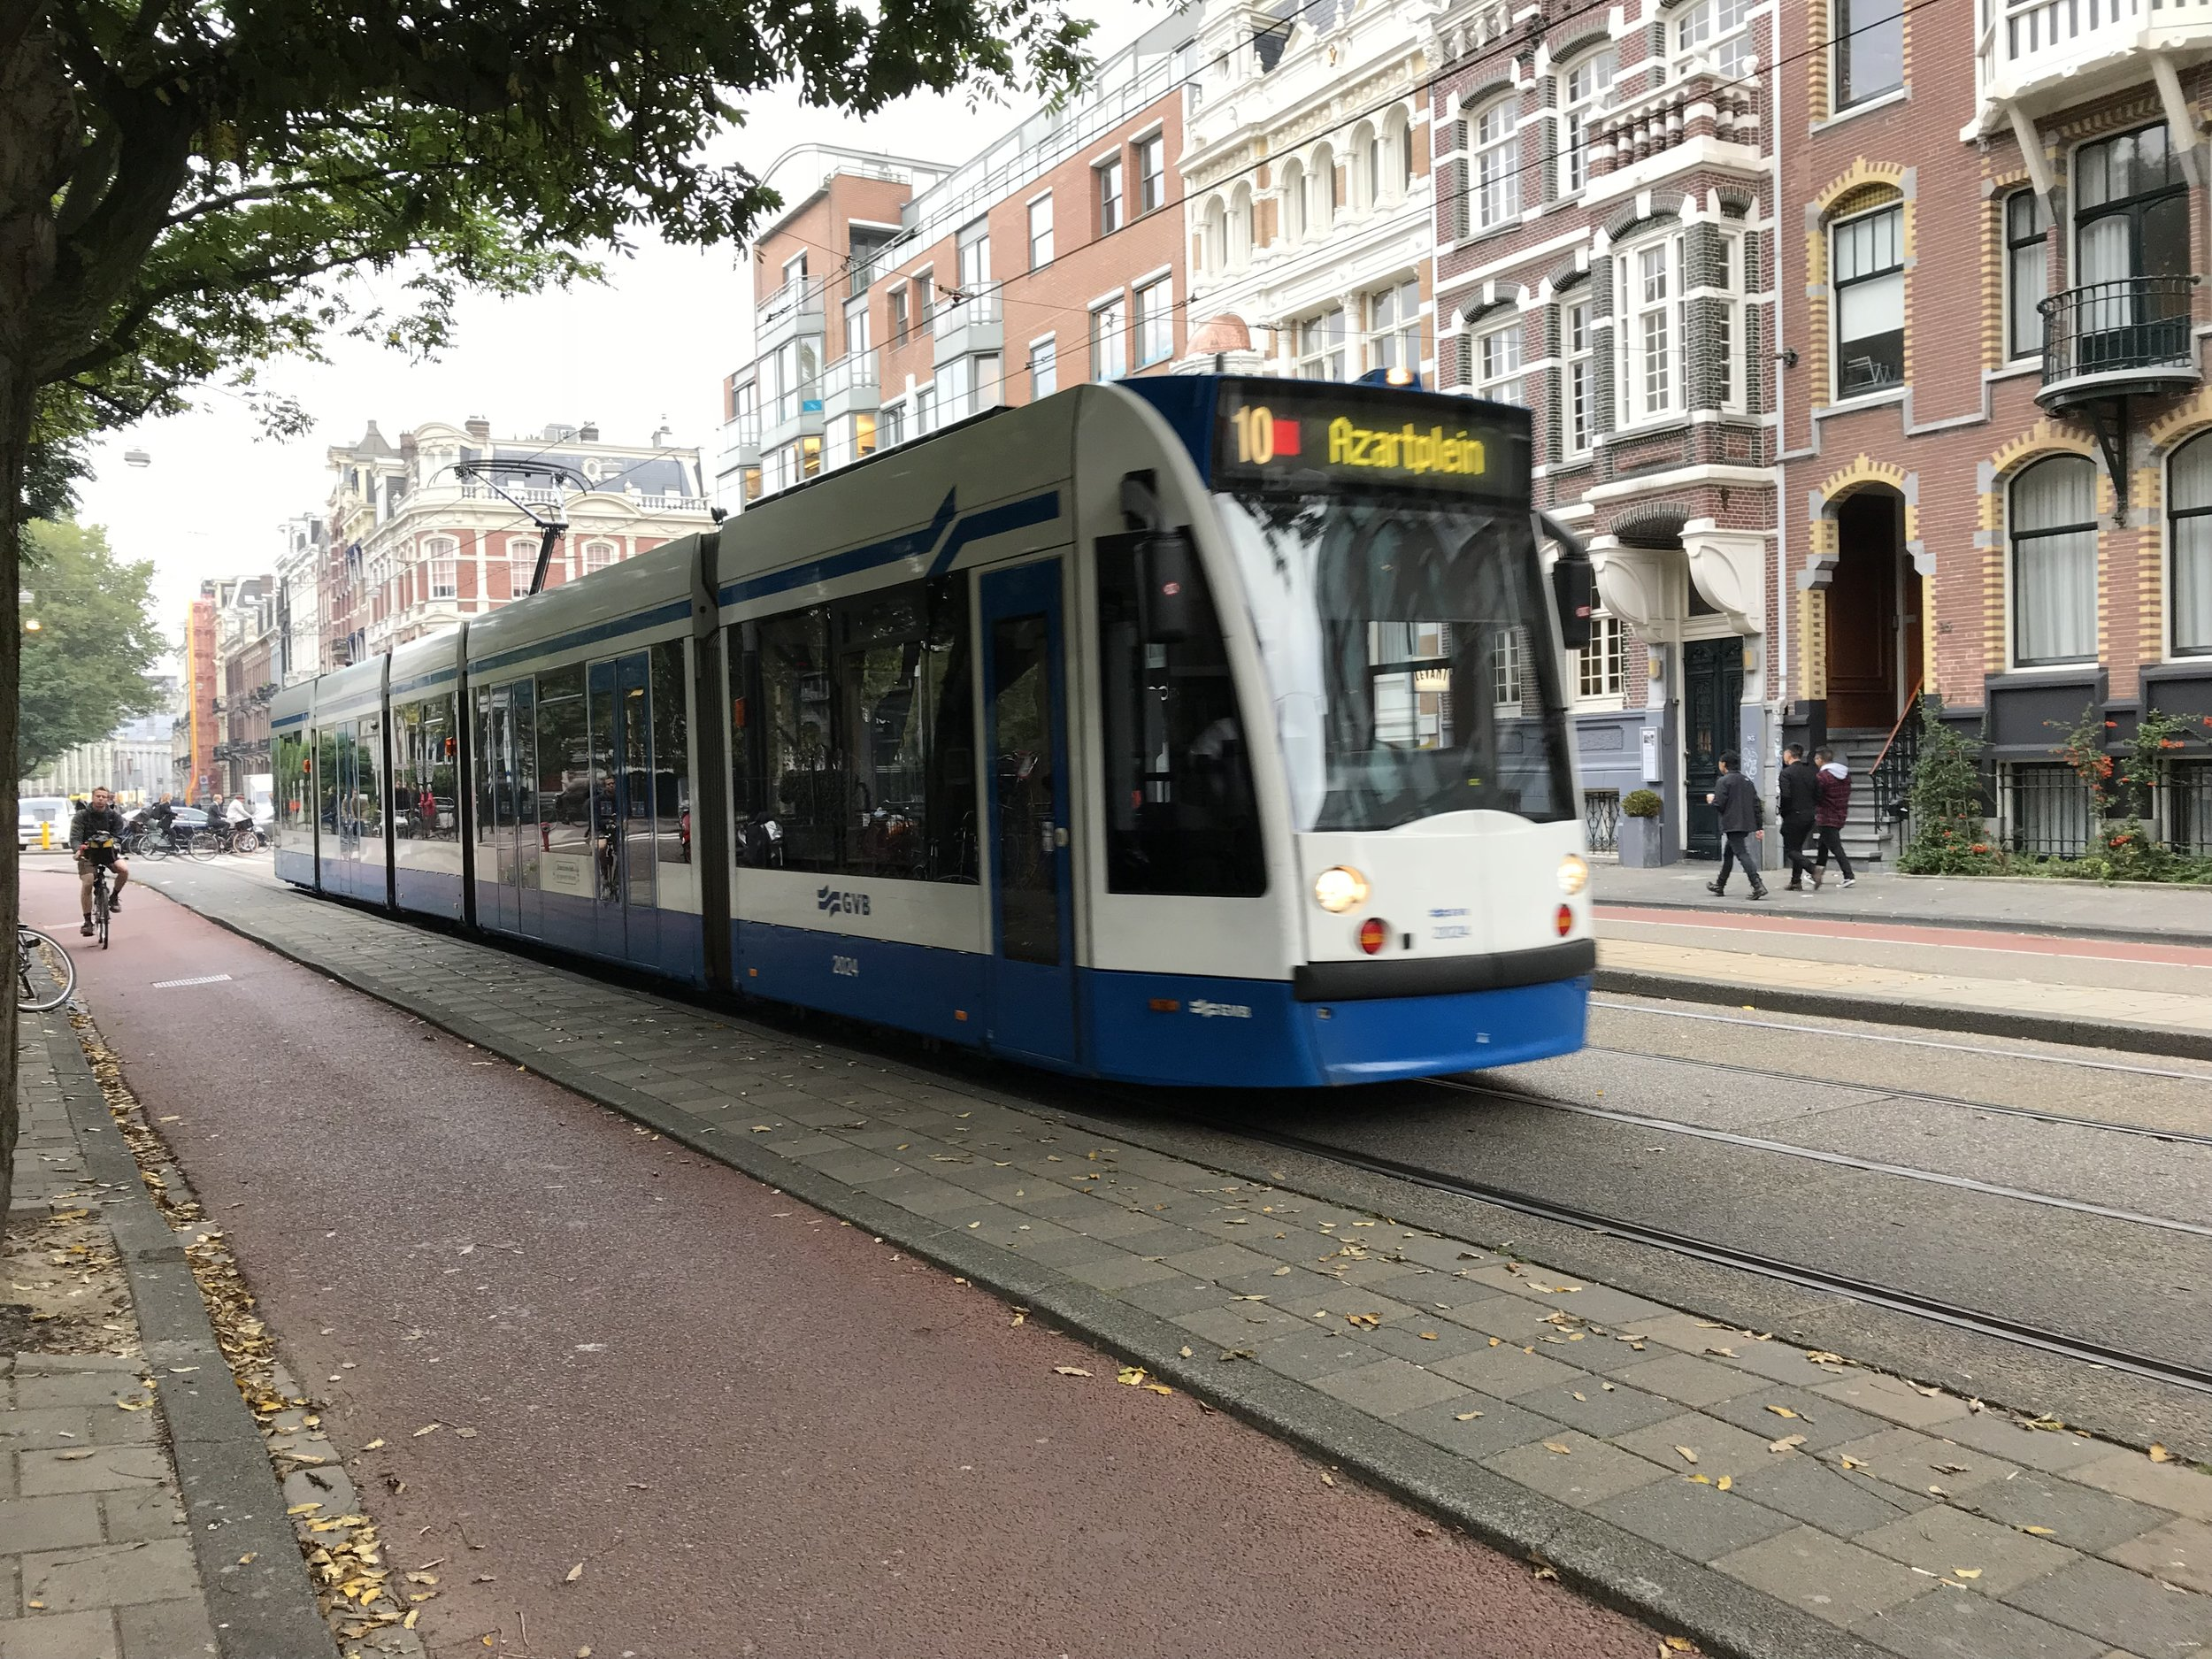 The trams in Amsterdam are convenient, easy and cheap. Pro-Tip: Buy an unlimited 24-hour card for about 7.50€